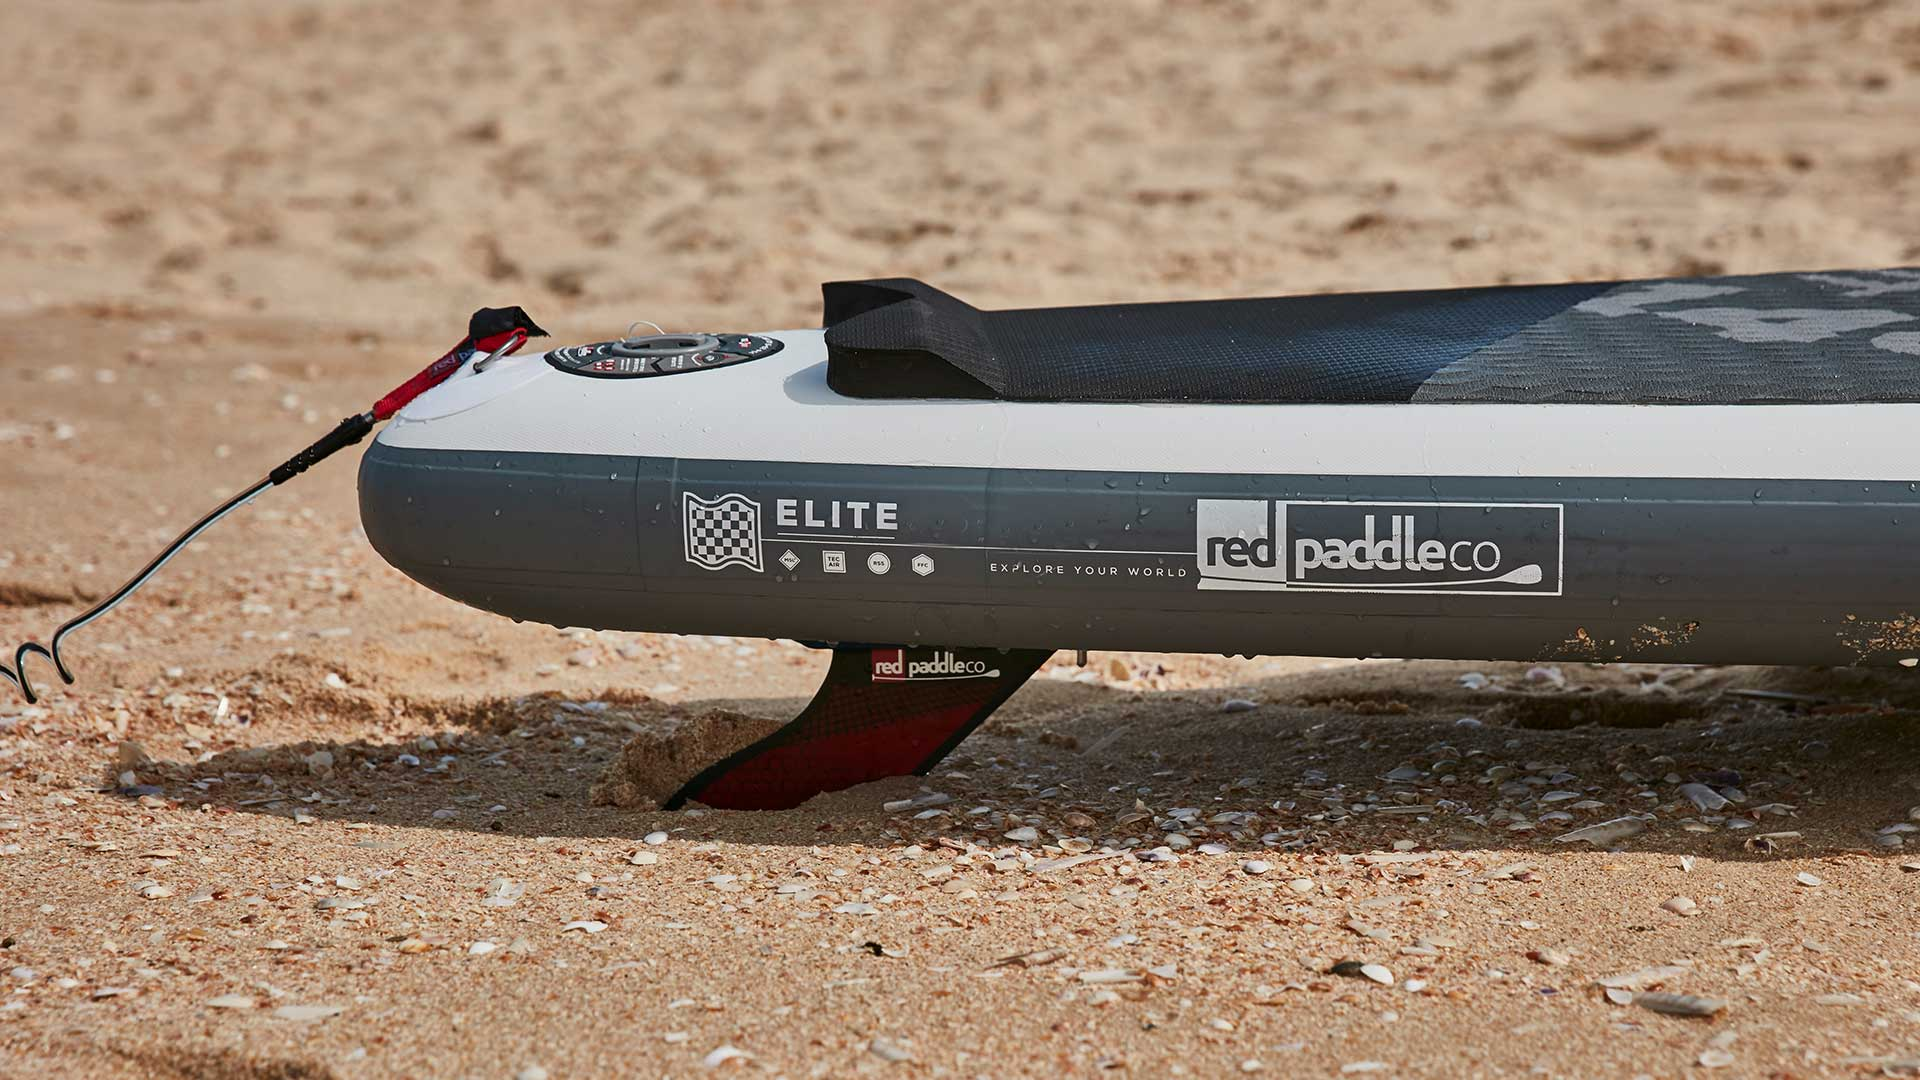 redpaddleco-126-x-26-elite-inflatable-paddle-board-desktop-gallery-fins